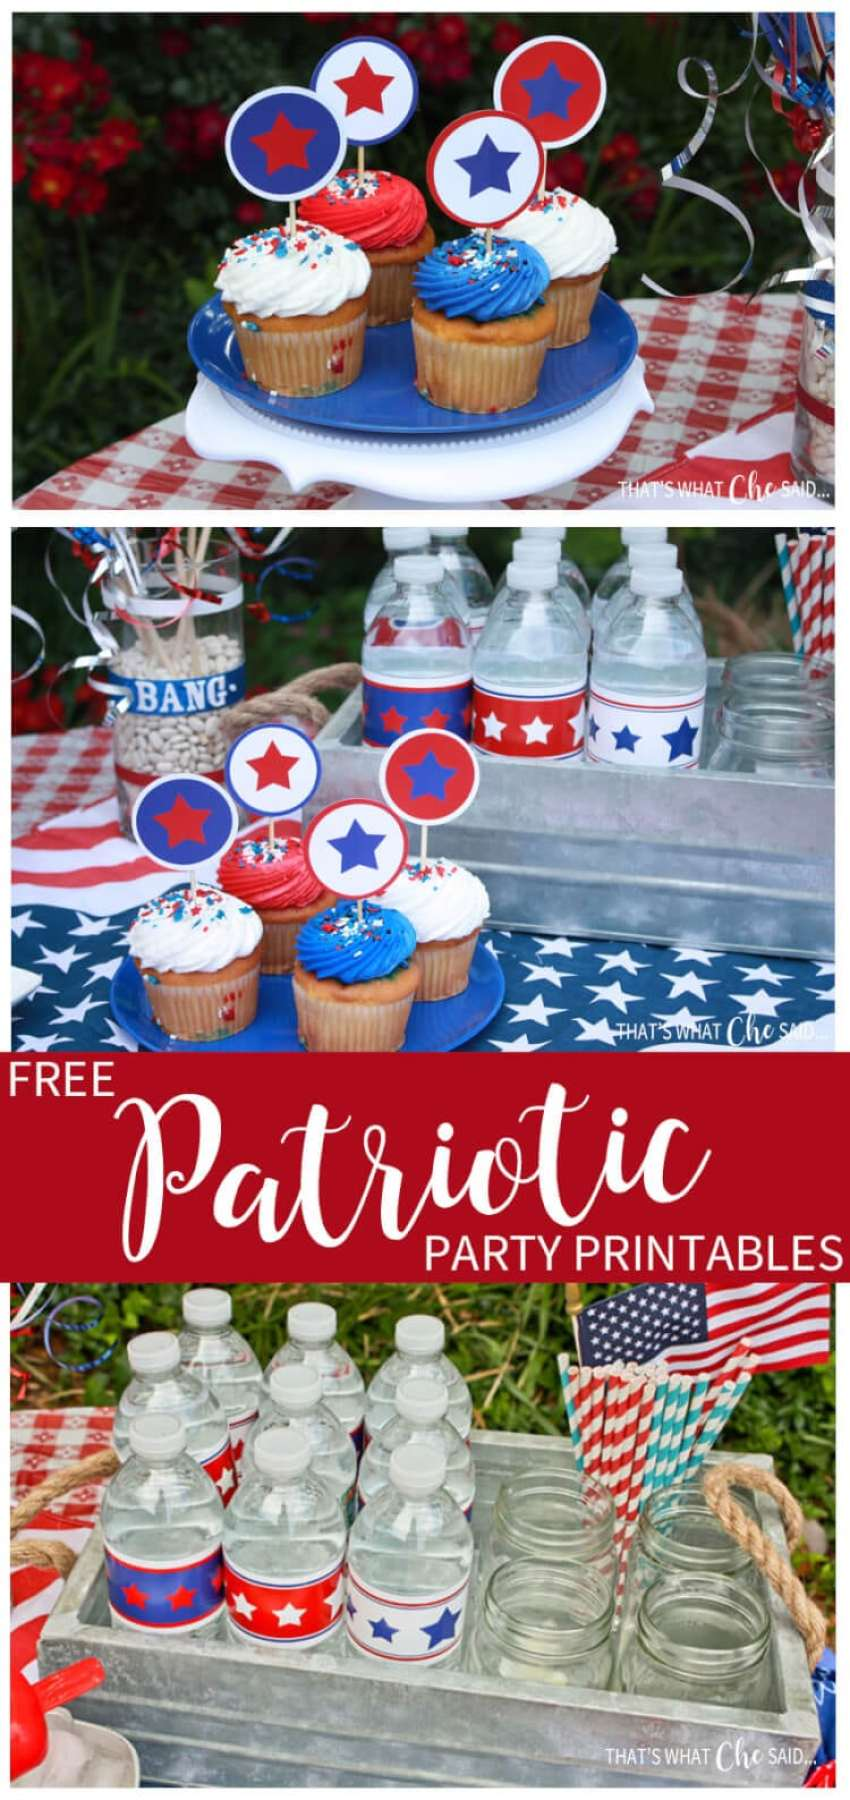 Free Patriotic Party Printables -- Perfect for Memorial Day, 4th of July and Labor Day festivities!